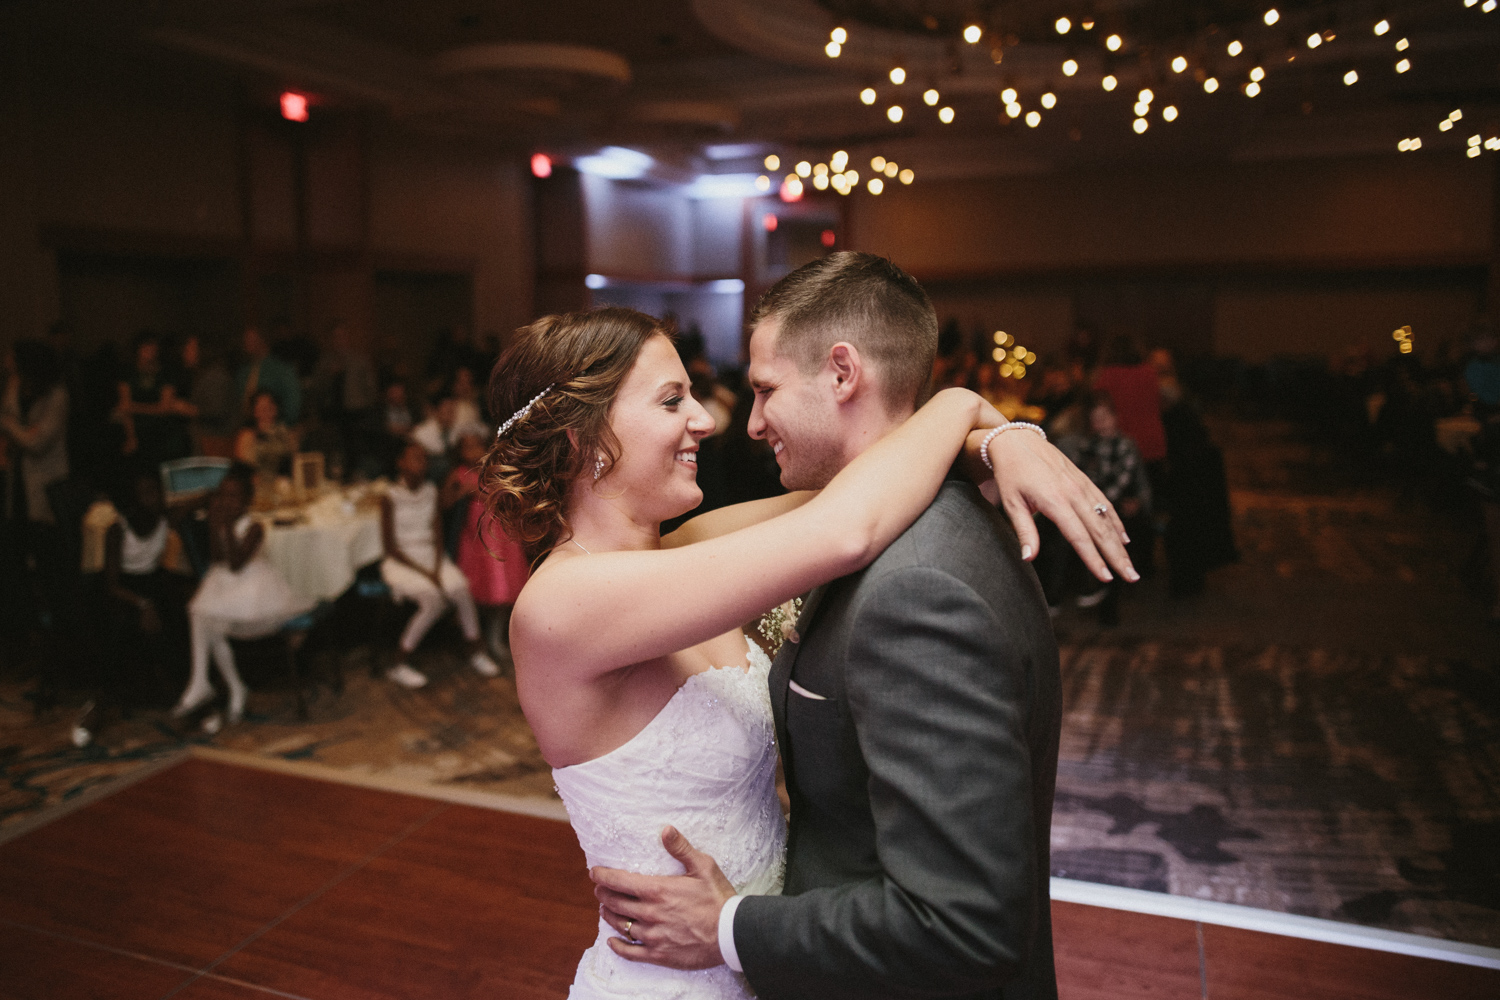 israel&aubrey_siouxfalls_wedding_photographer_109.jpg